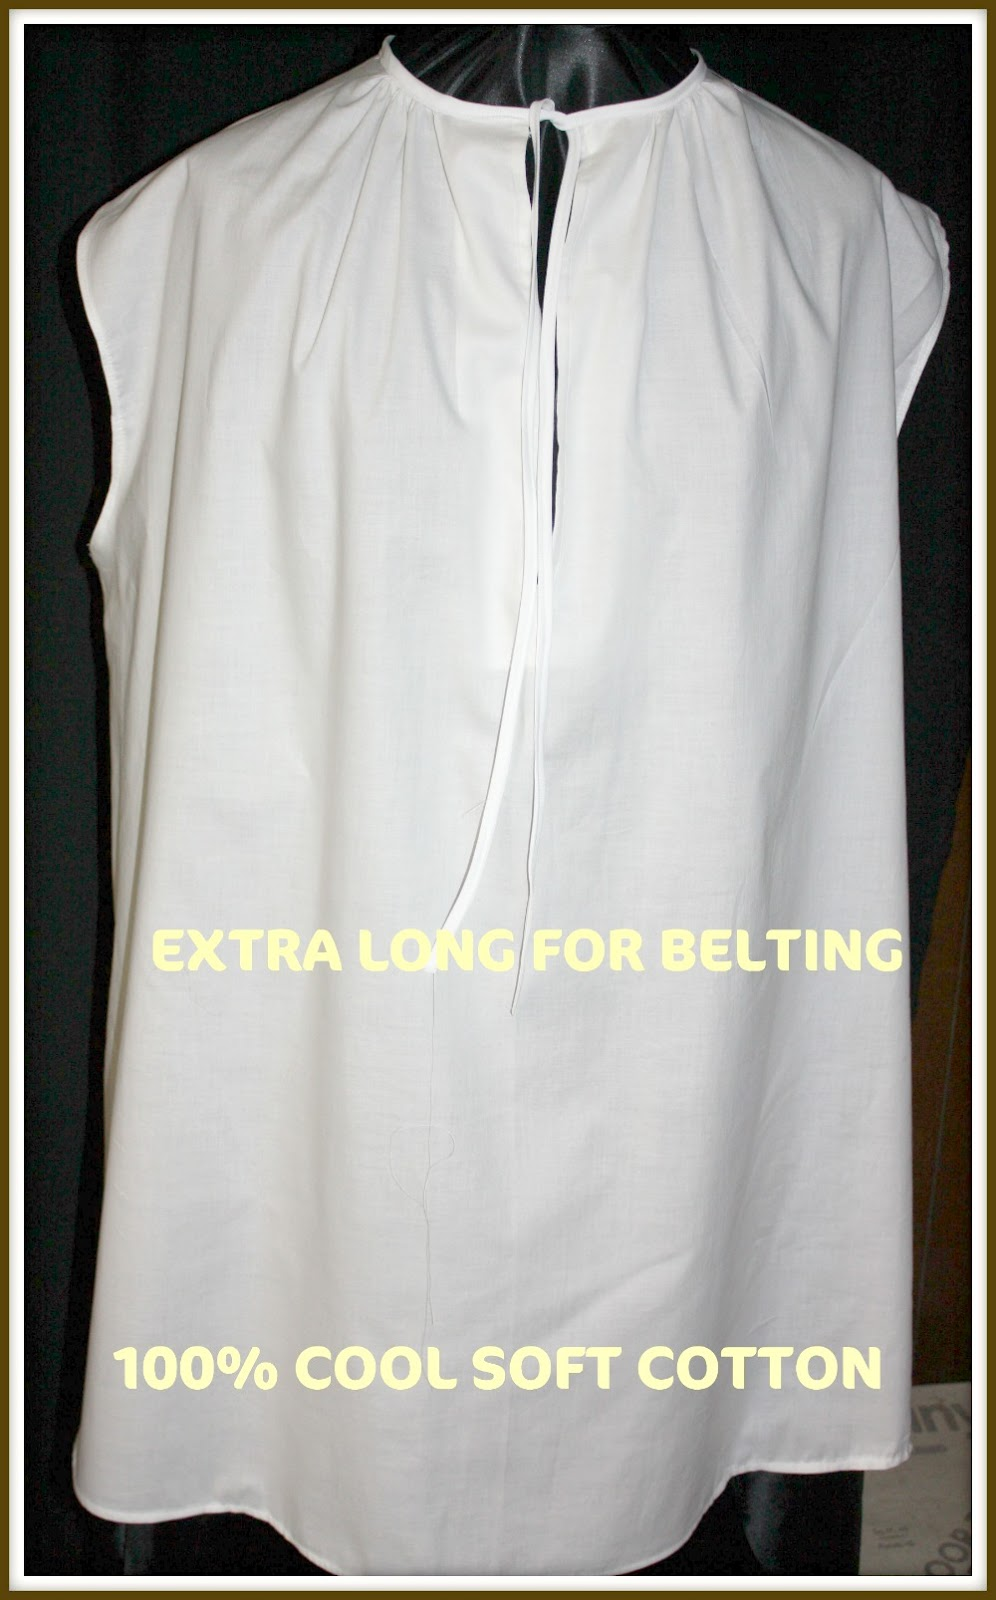 948b201e6ba AVAILABLE IN WHITE OR BLACK, ANY SIZE EXTRA SMALL TO 4X. CUSTOM MADE TO FIT  YOU. PLEASE SEND ME YOUR CHEST MEASUREMENTS SALE PRICE: 29.79!!!! LOW PRICES  ...